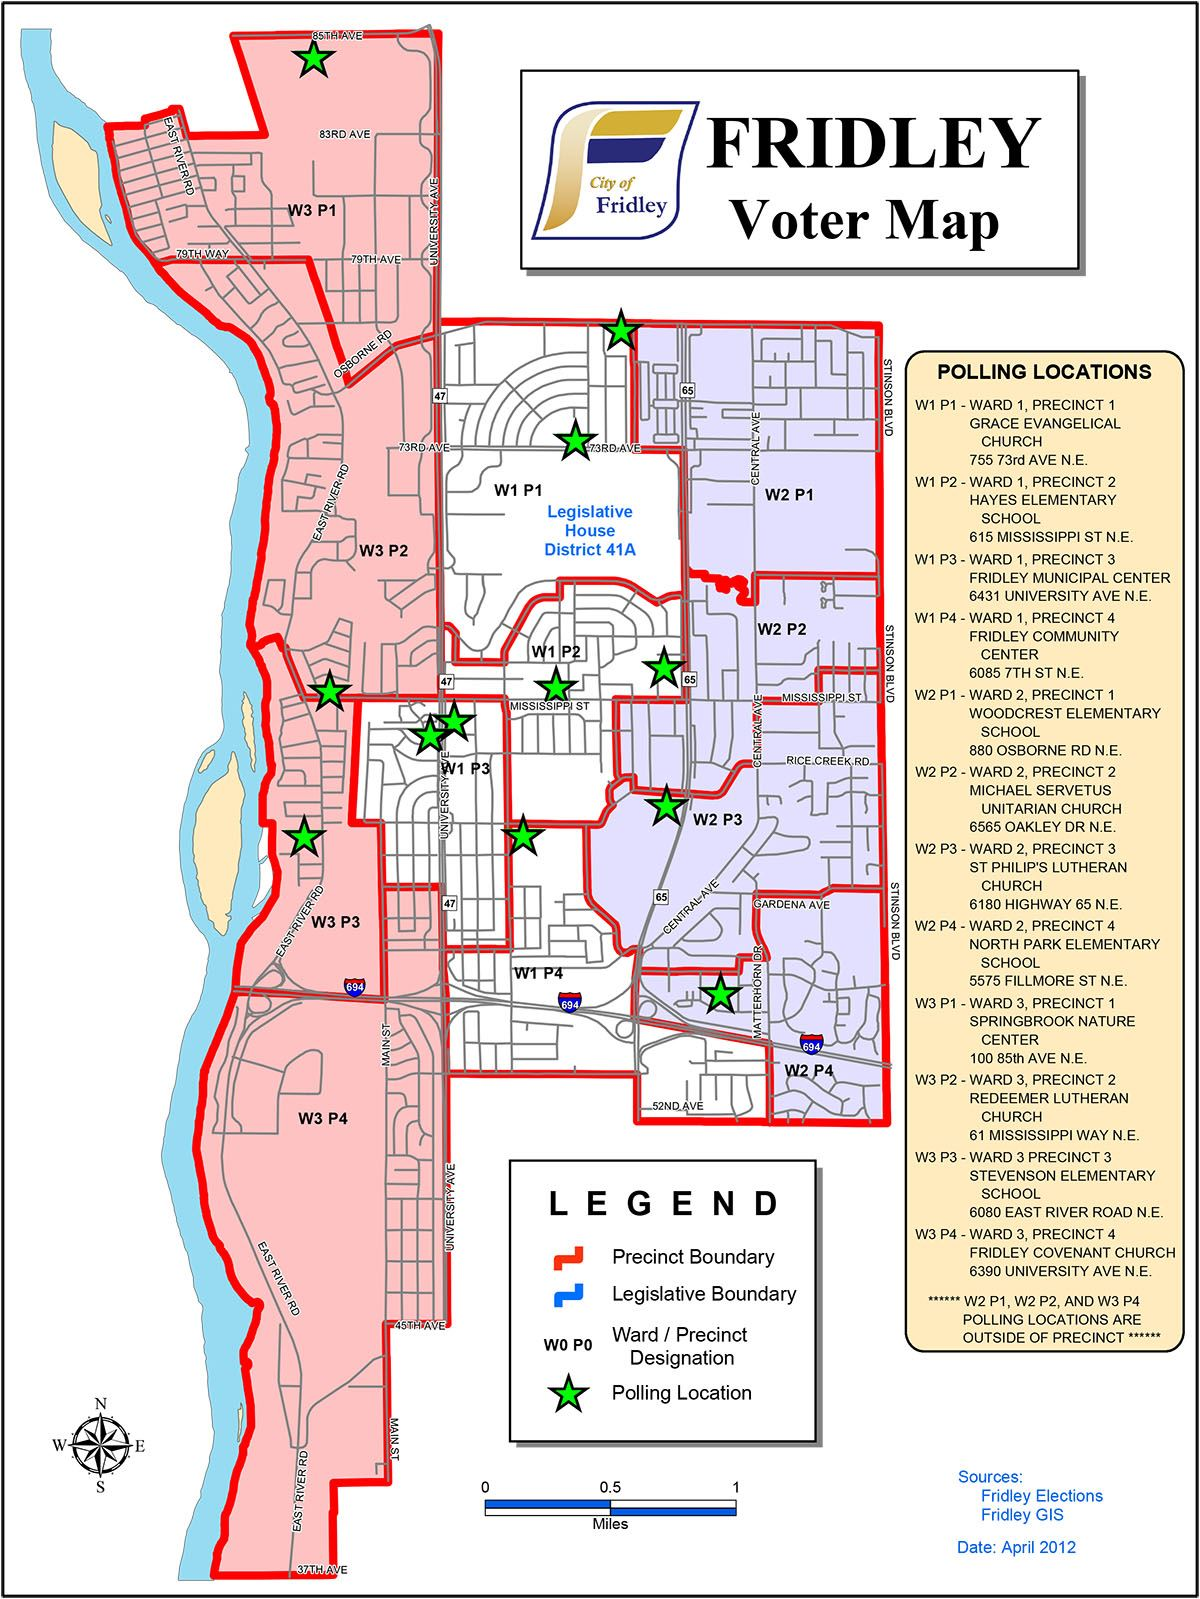 Fridley Voter Map